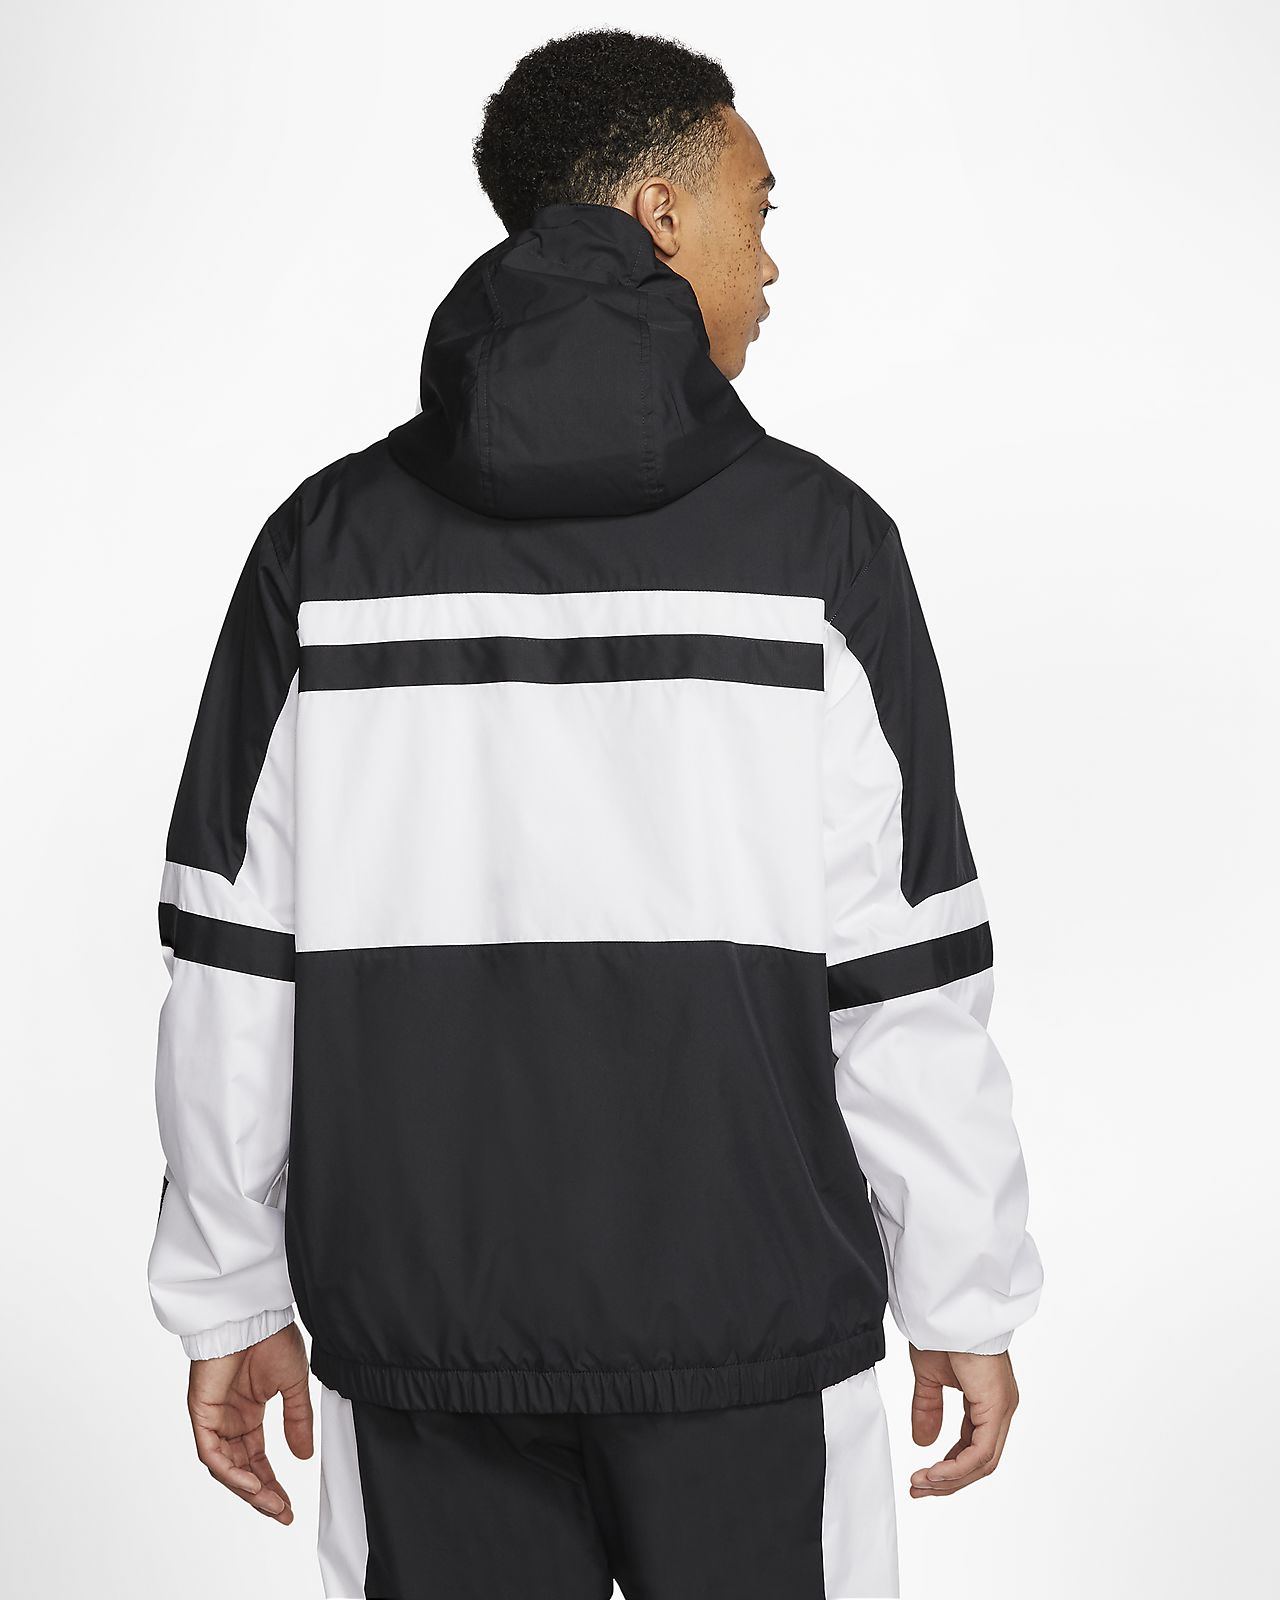 AIR WOVEN ANORAK JACKET